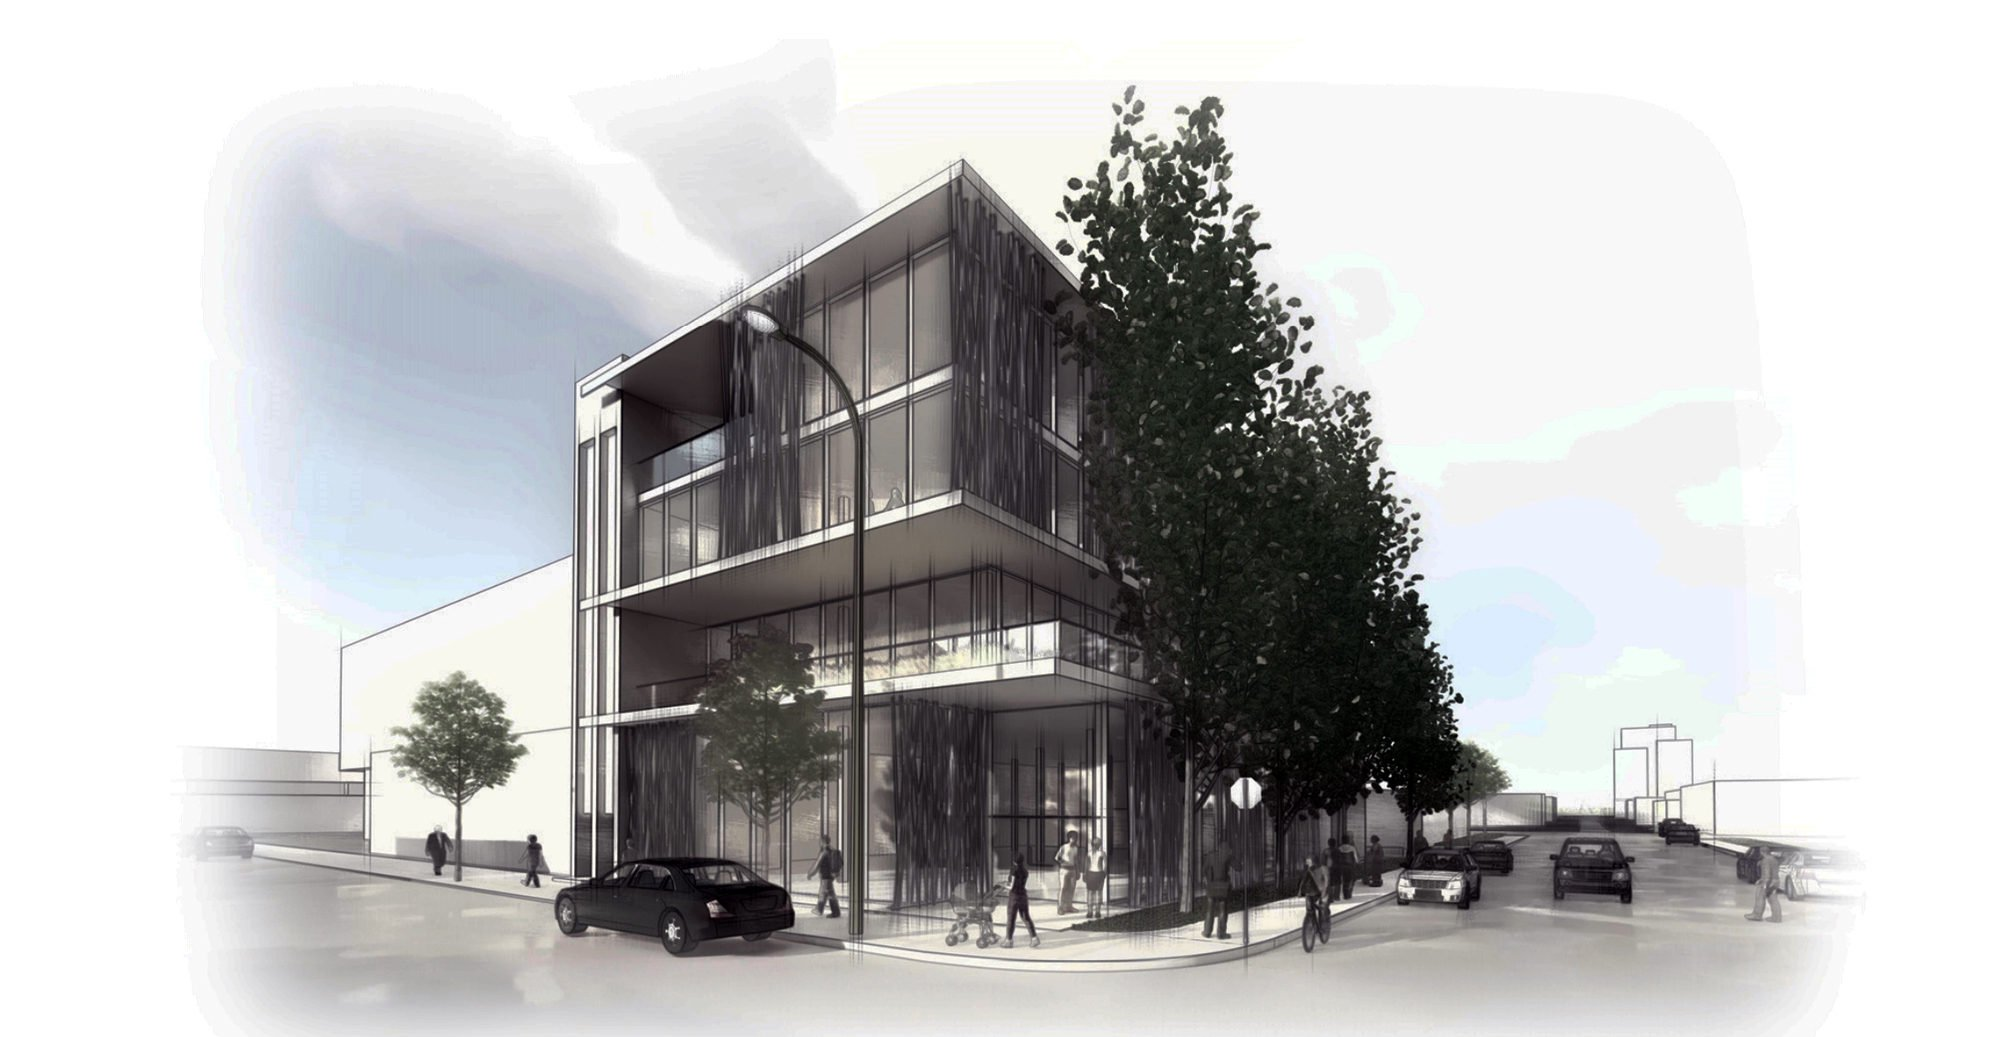 Four-storey industrial/office building slated for West 5th and Columbia